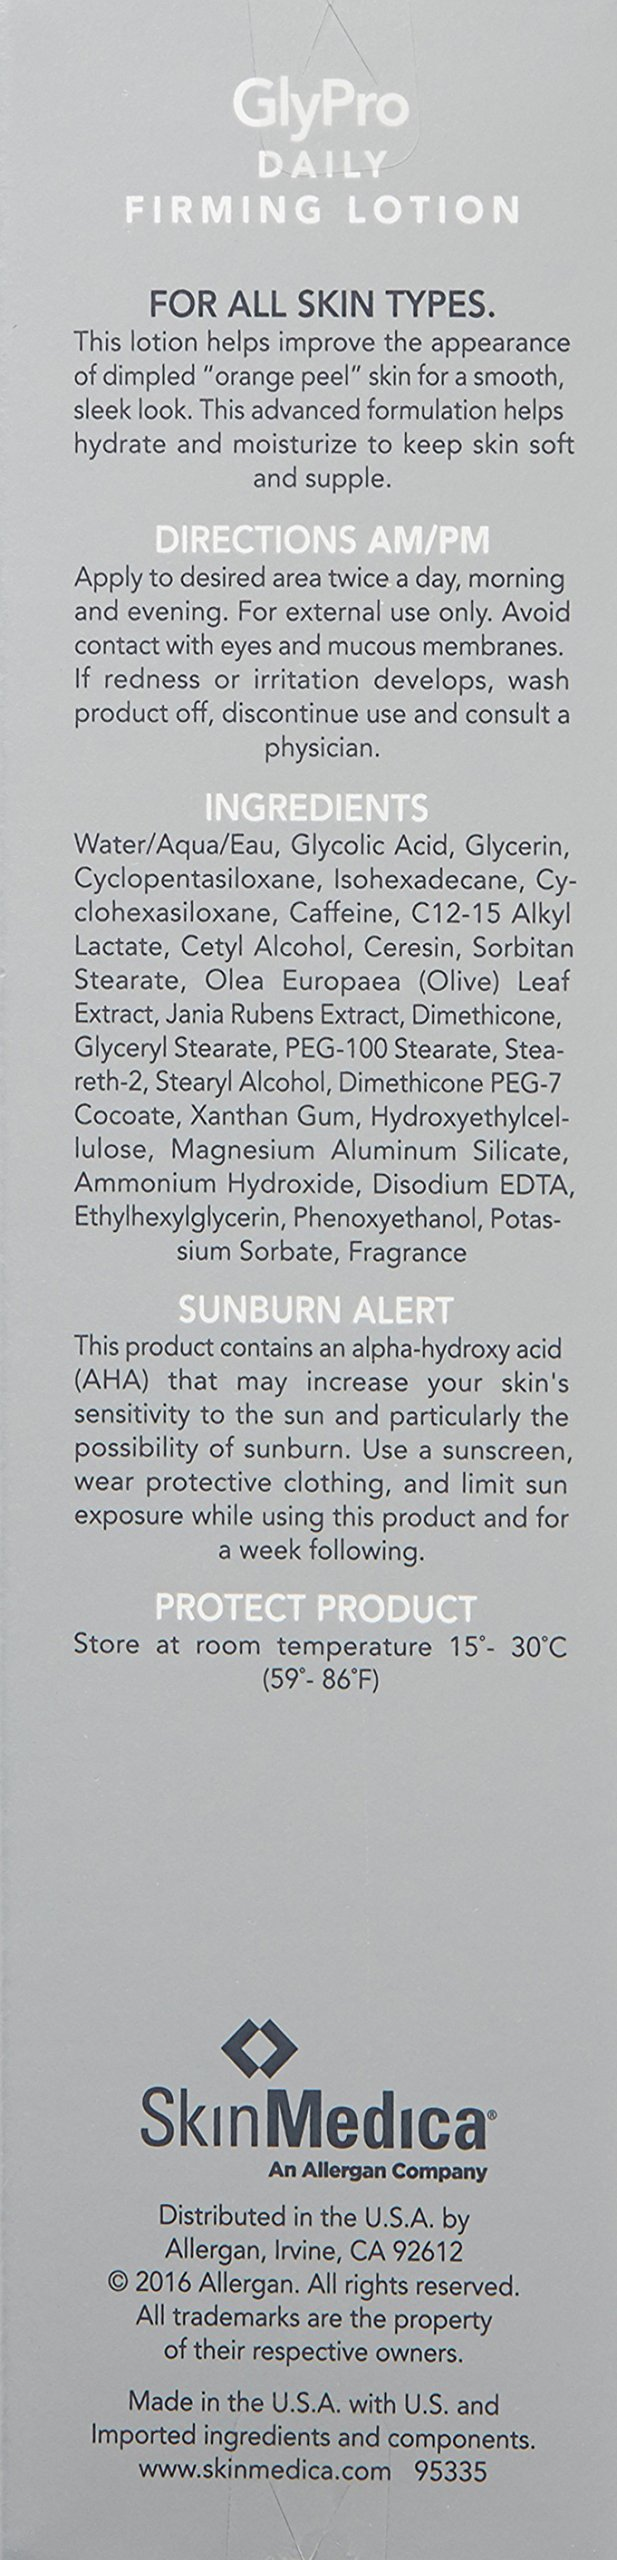 SkinMedica Glypro Daily Firming Lotion, 6 oz. by SkinMedica (Image #2)